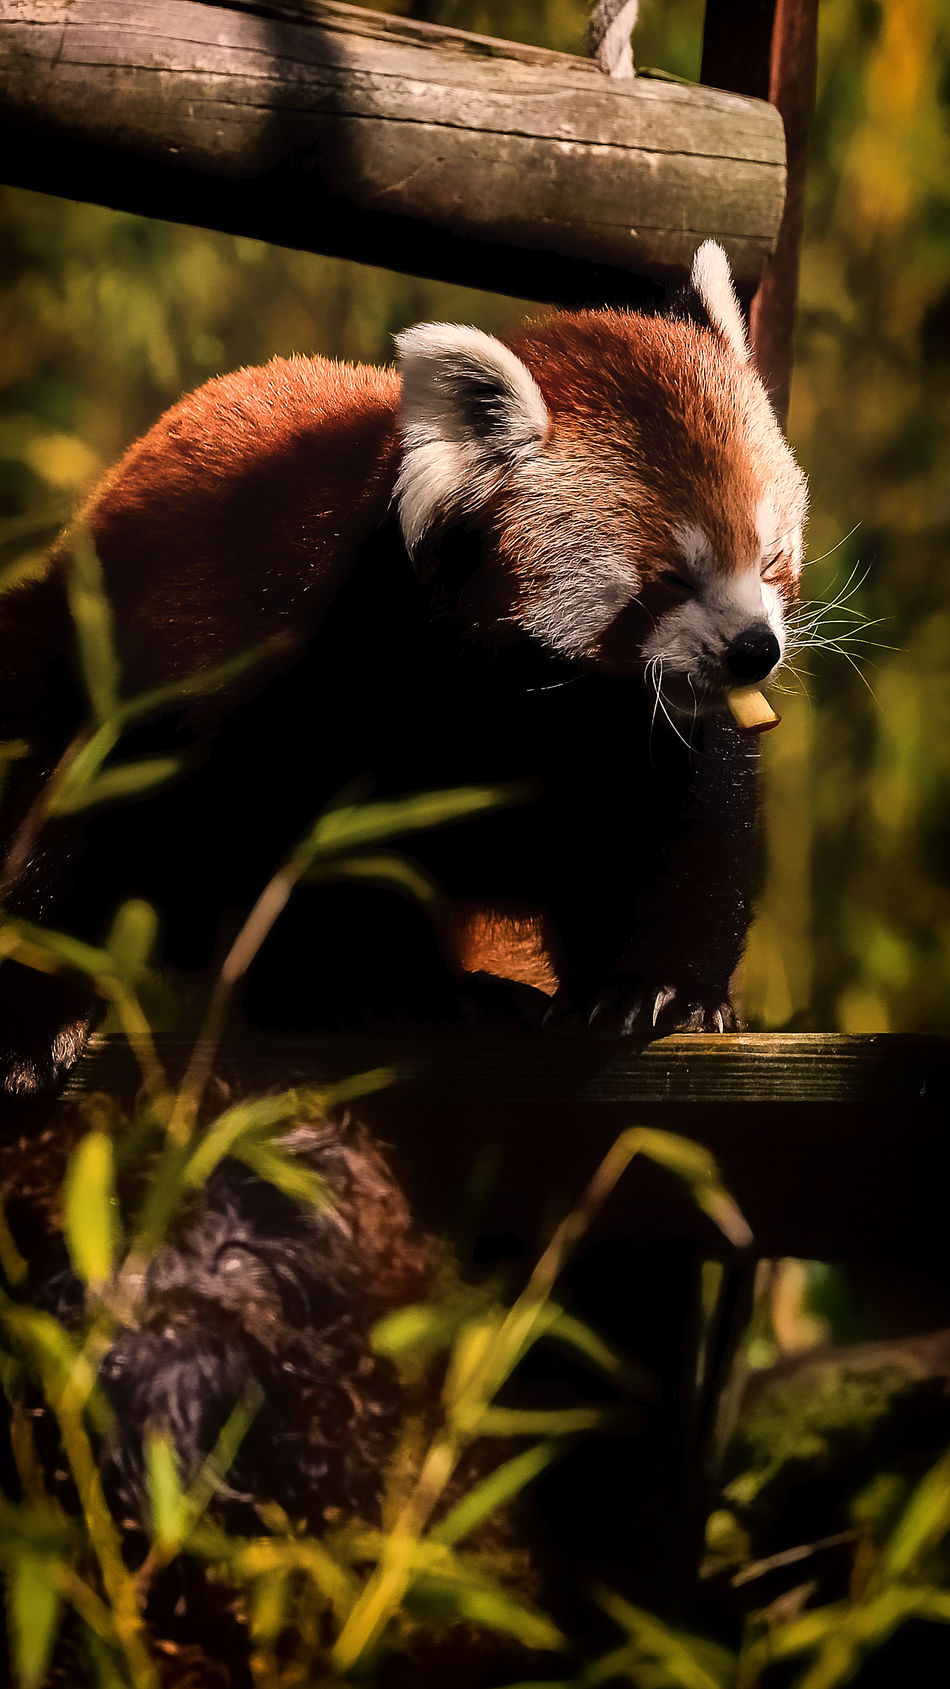 Animal Themes Animals In The Wild Close-up Day Mammal Nature No People One Animal Outdoors Panda Red Panda